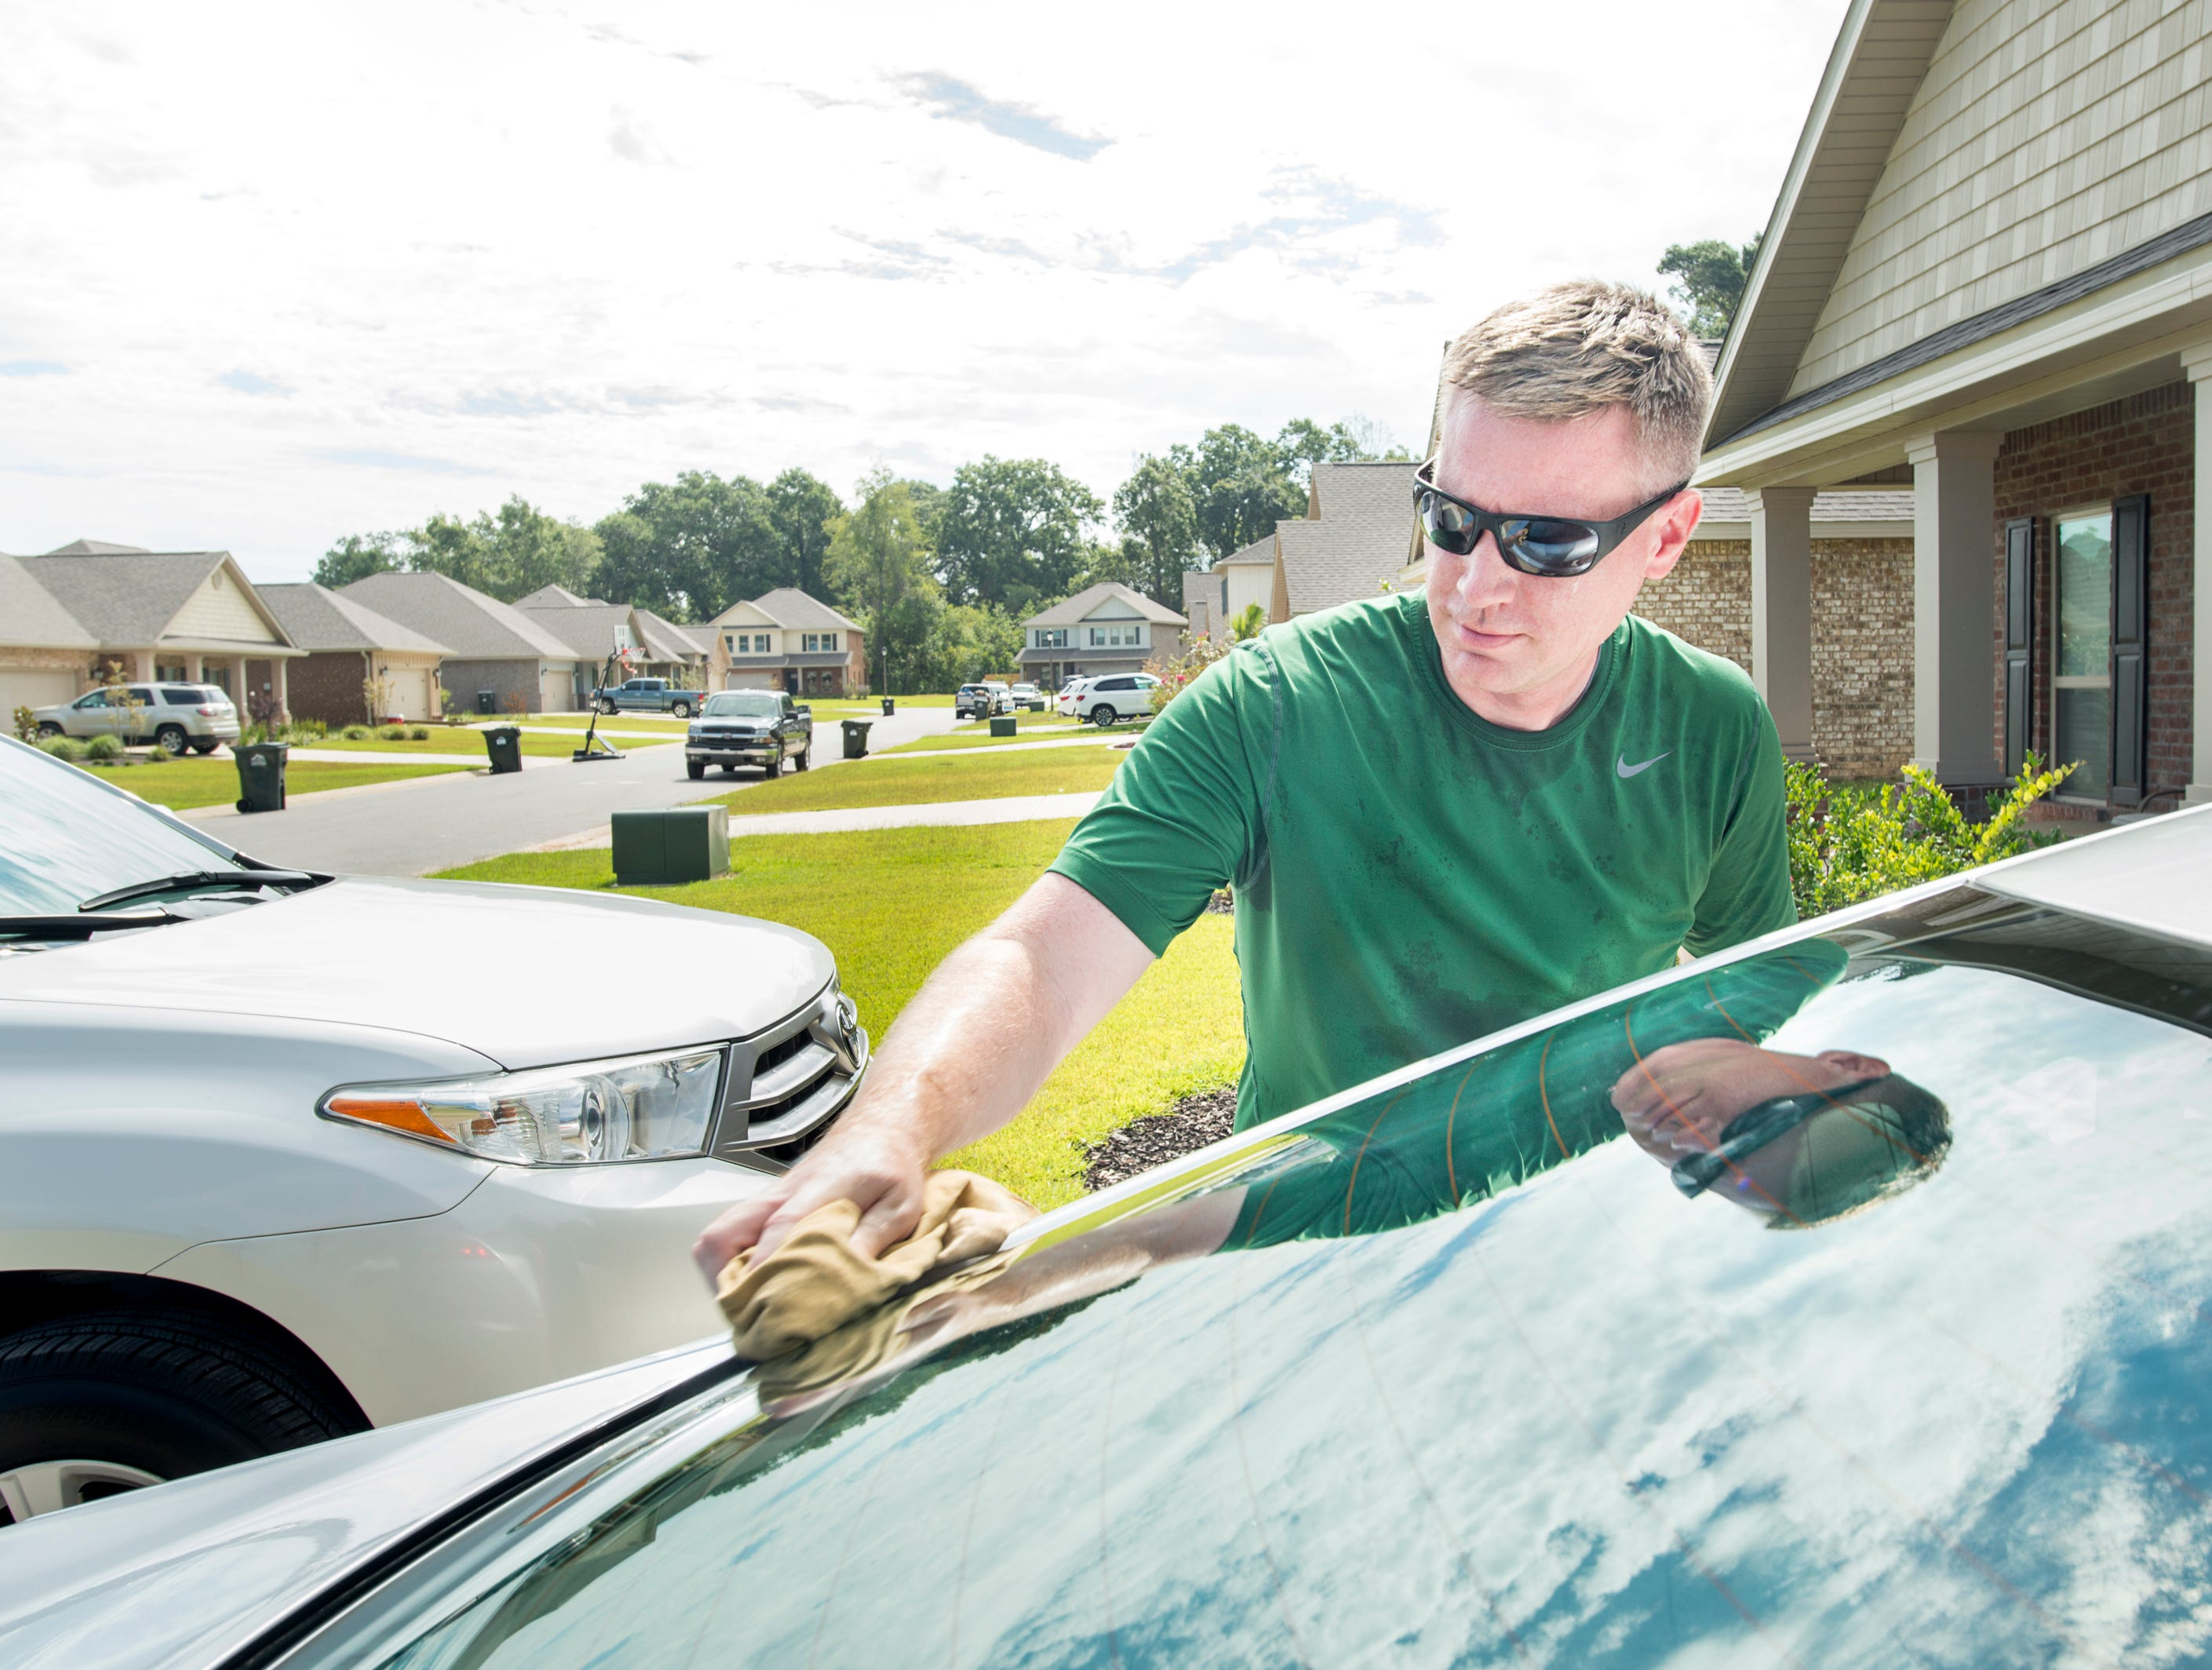 Jim Gormley cleans his car outside of his home in the new subdivision of Heritage Estates in Pace's District 1 on Tuesday, August 7, 2018.  Gormley was one of the first families to move into the neighborhood eight months ago.